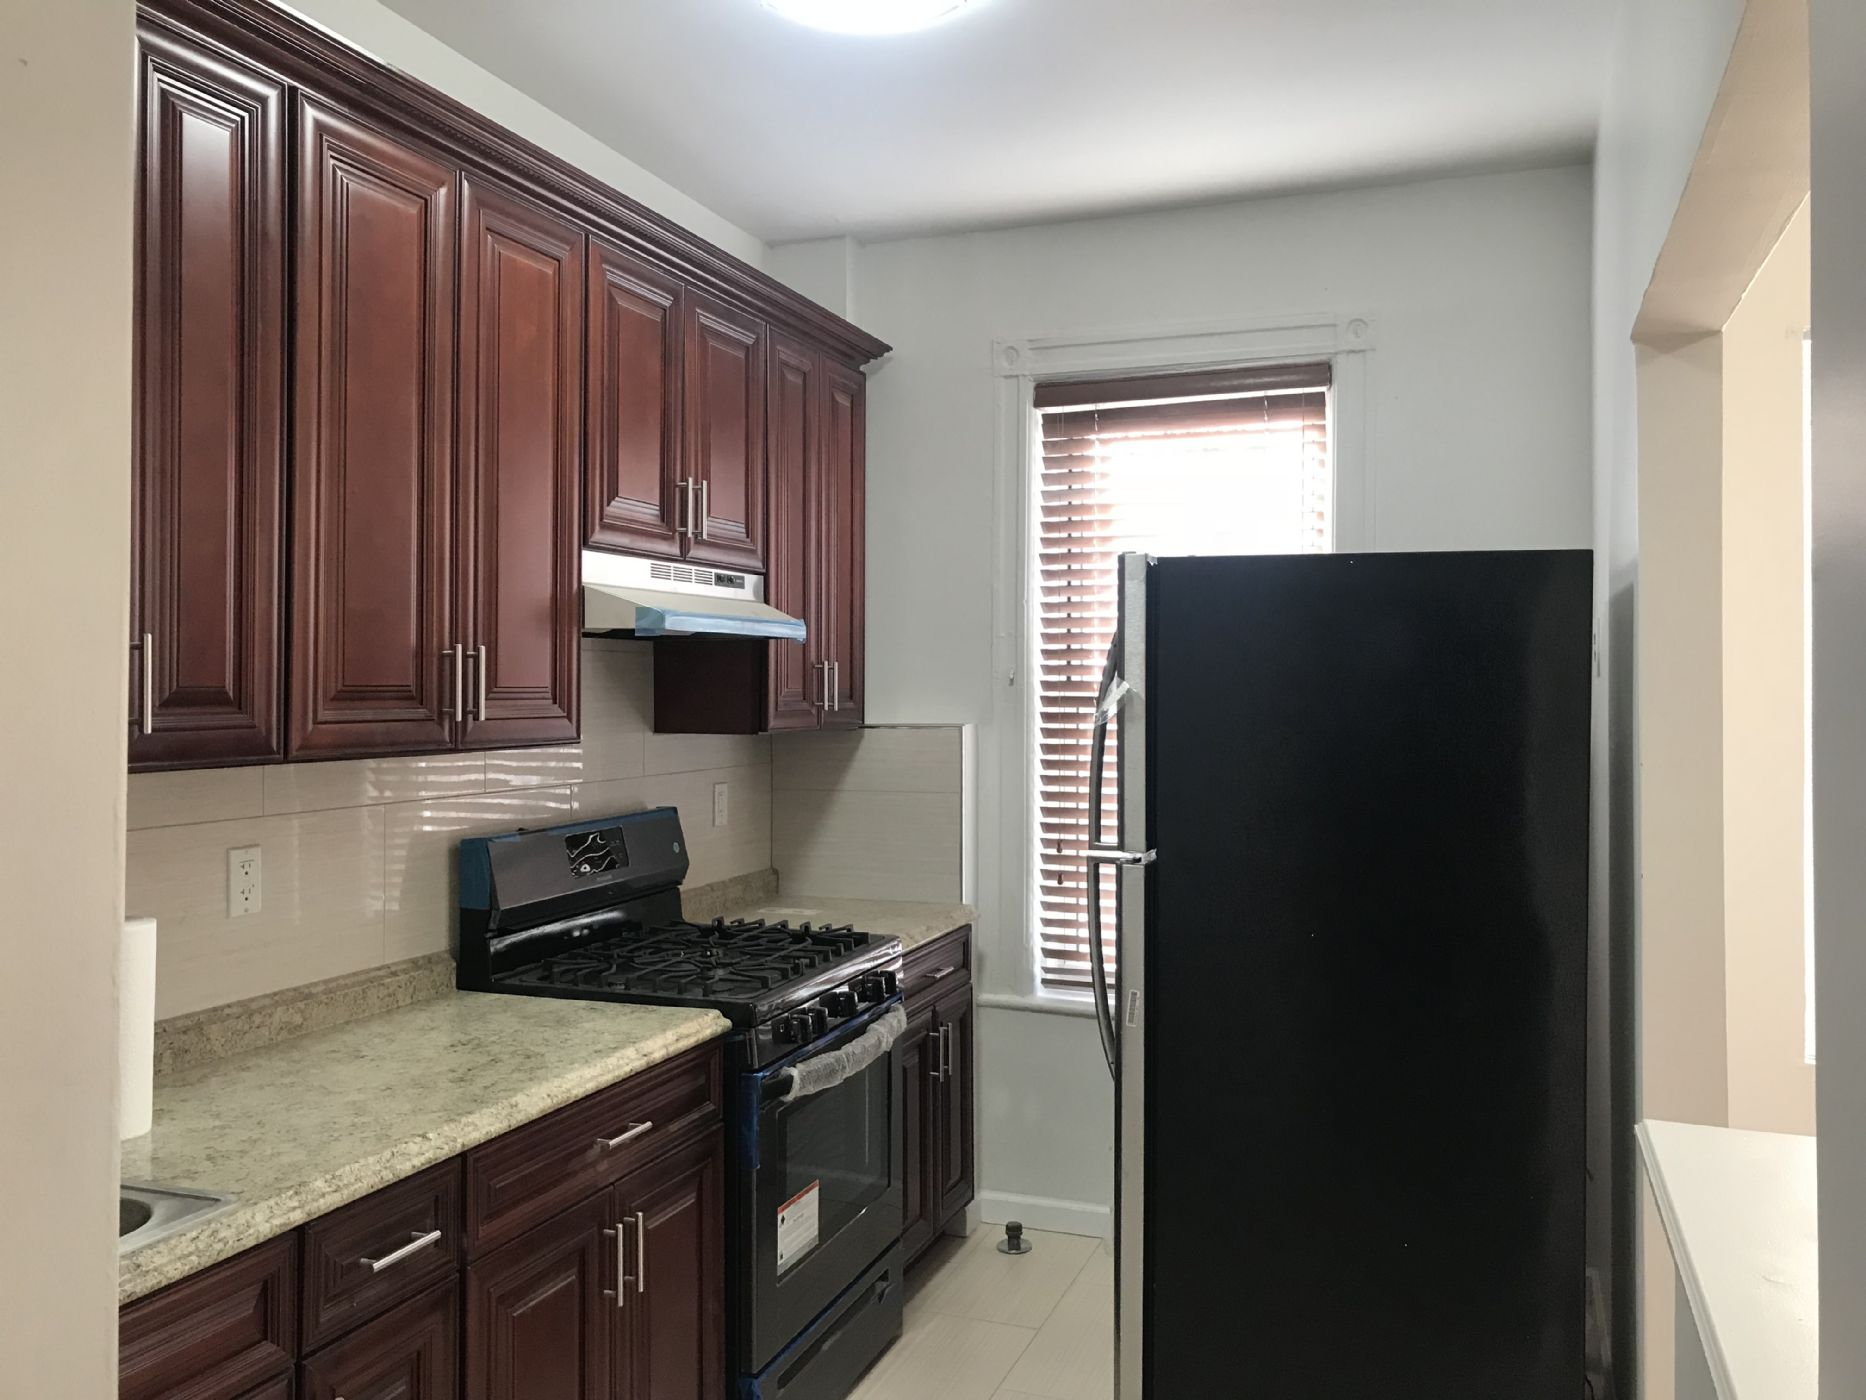 RENOVATED 2 BEDROOMS + OFFICE SPACE IN BORO PARK NEAR MAIMONIDES HOSPITAL